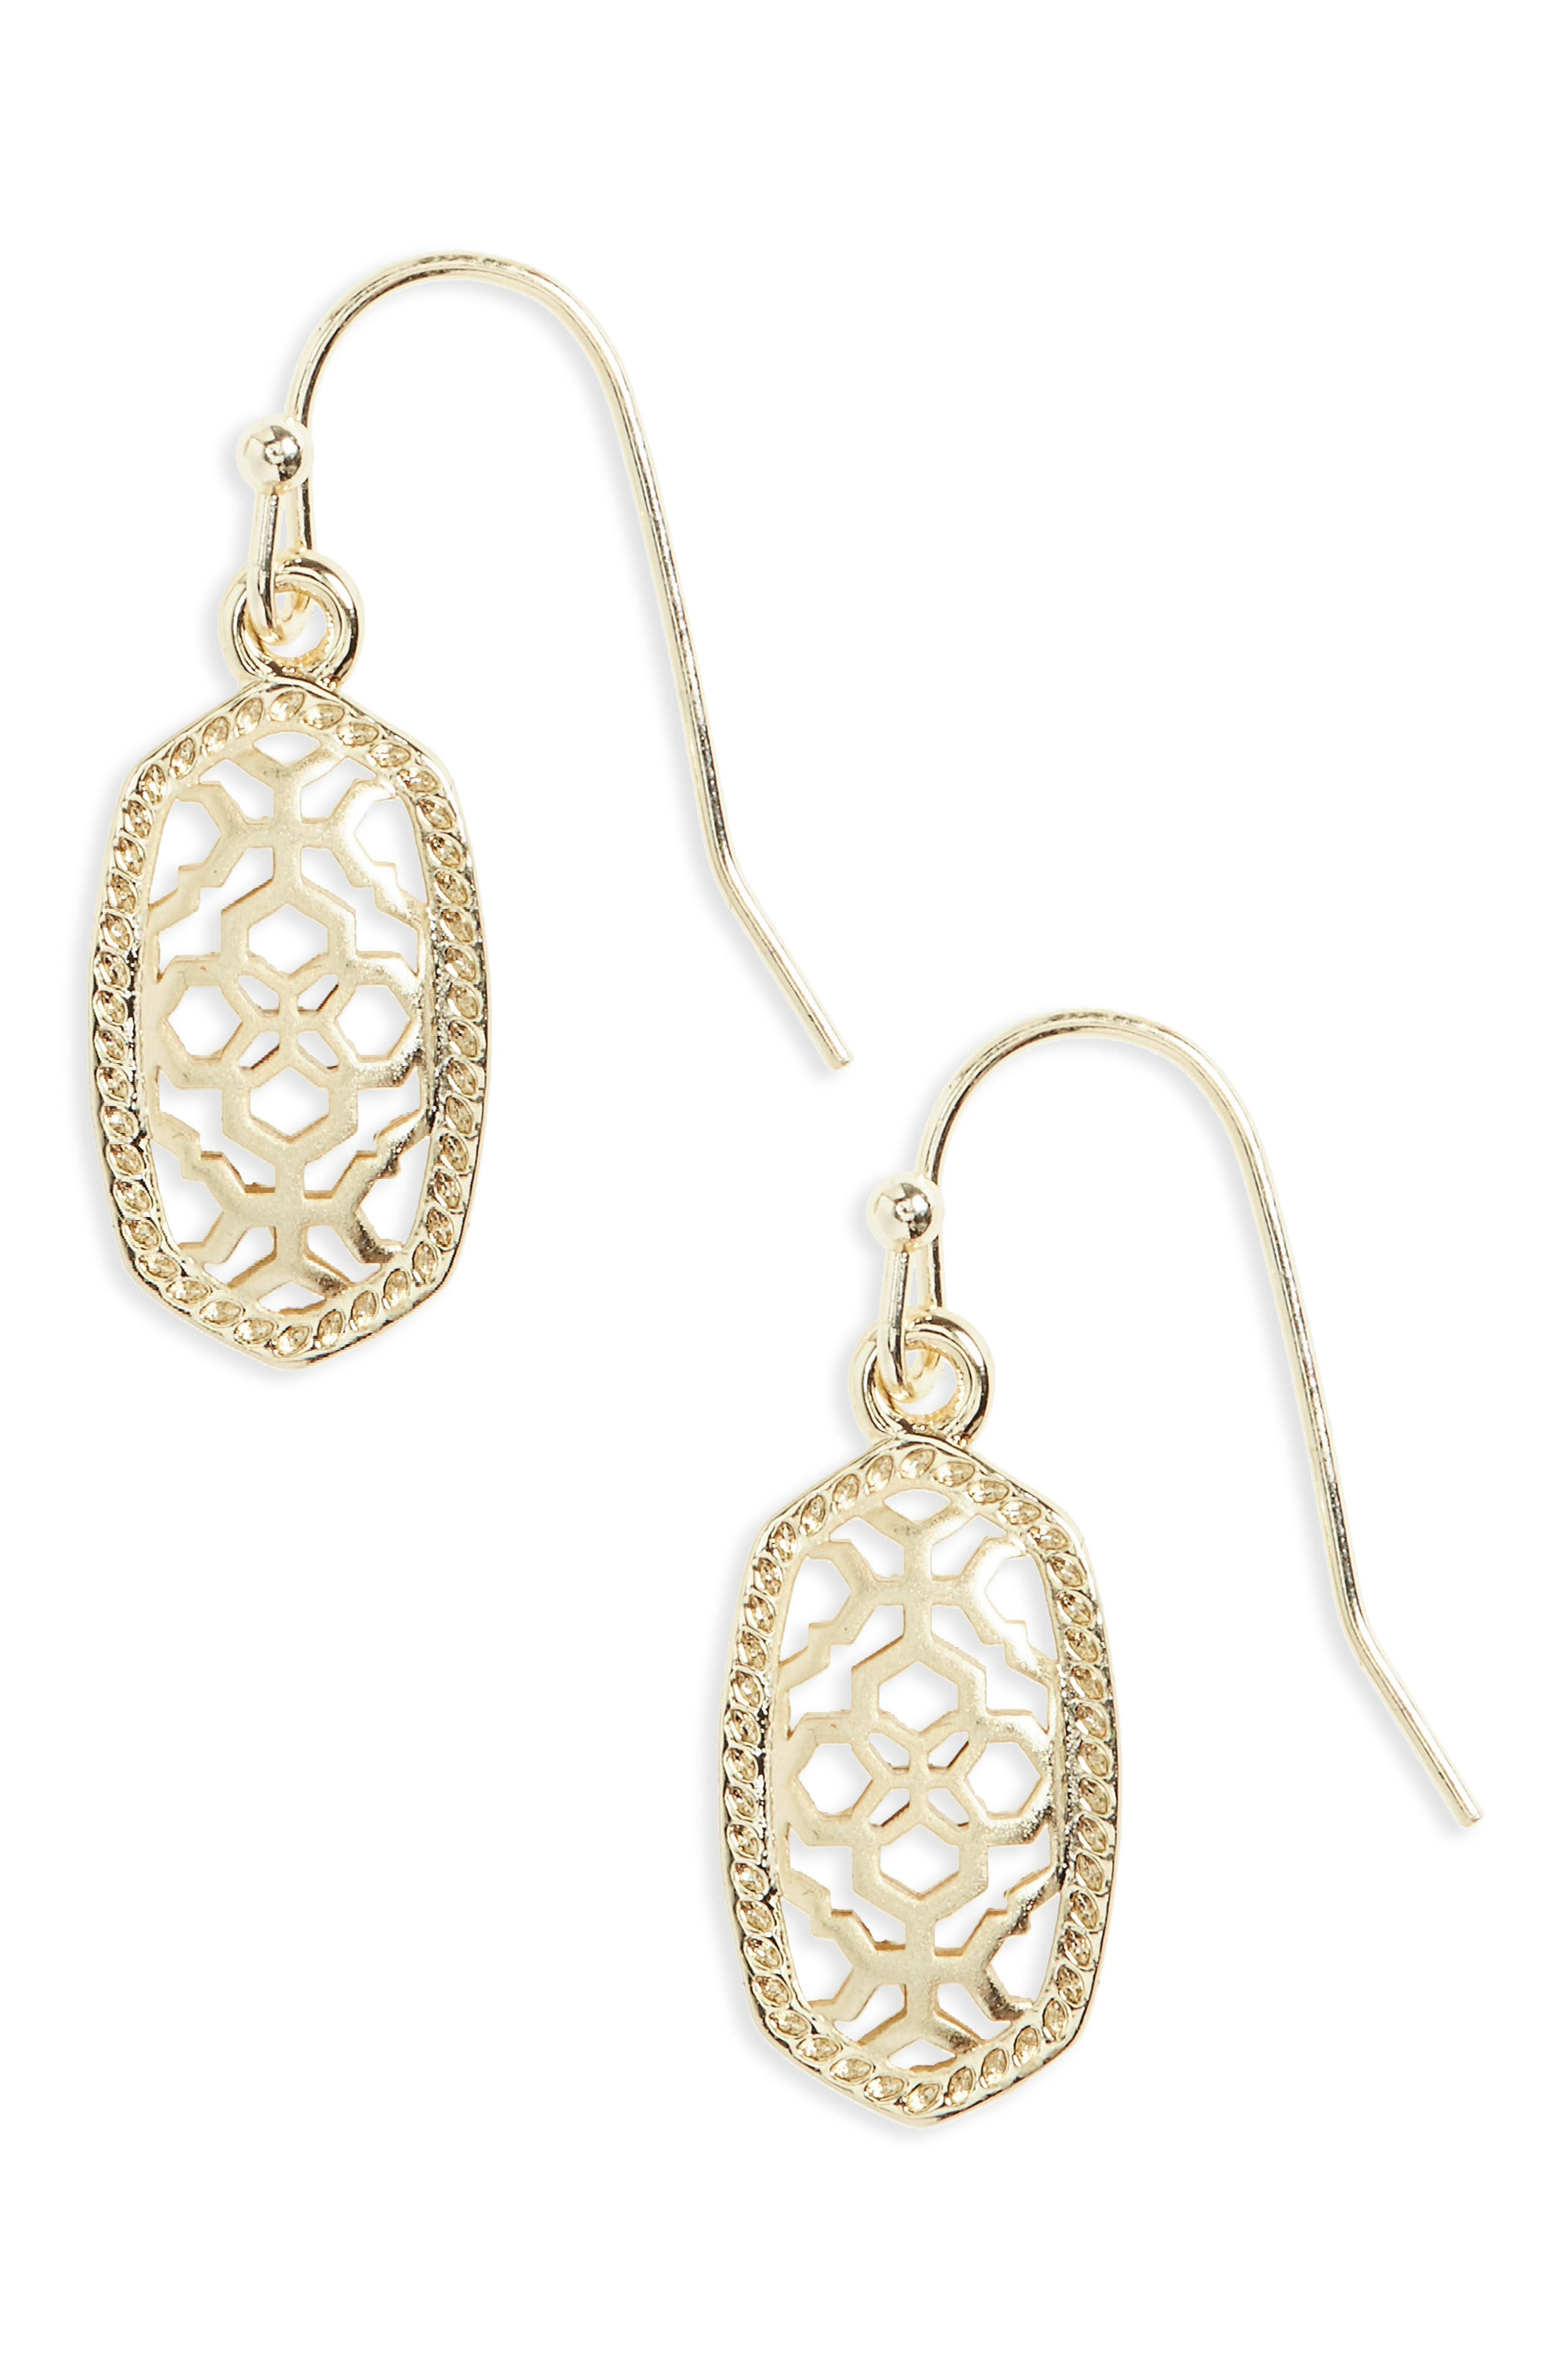 Kendra Scott Lee Small Filigree Drop Earring.